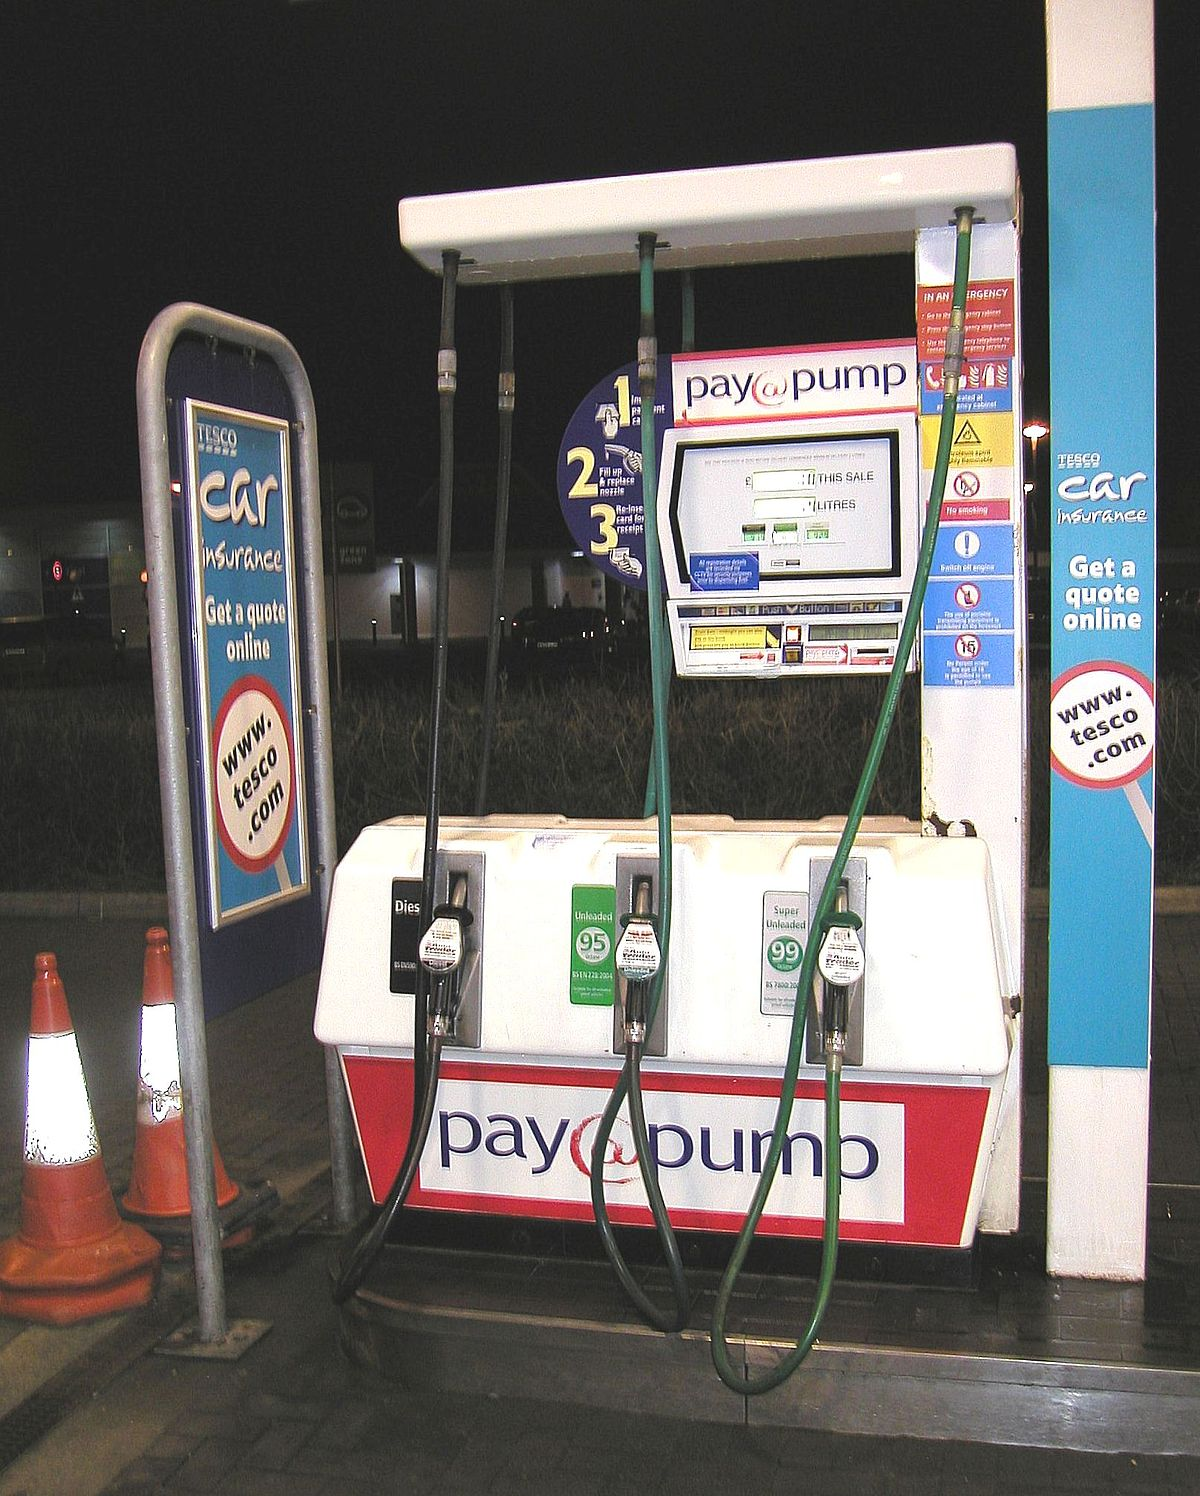 2007 United Kingdom Petrol Contamination Wikipedia